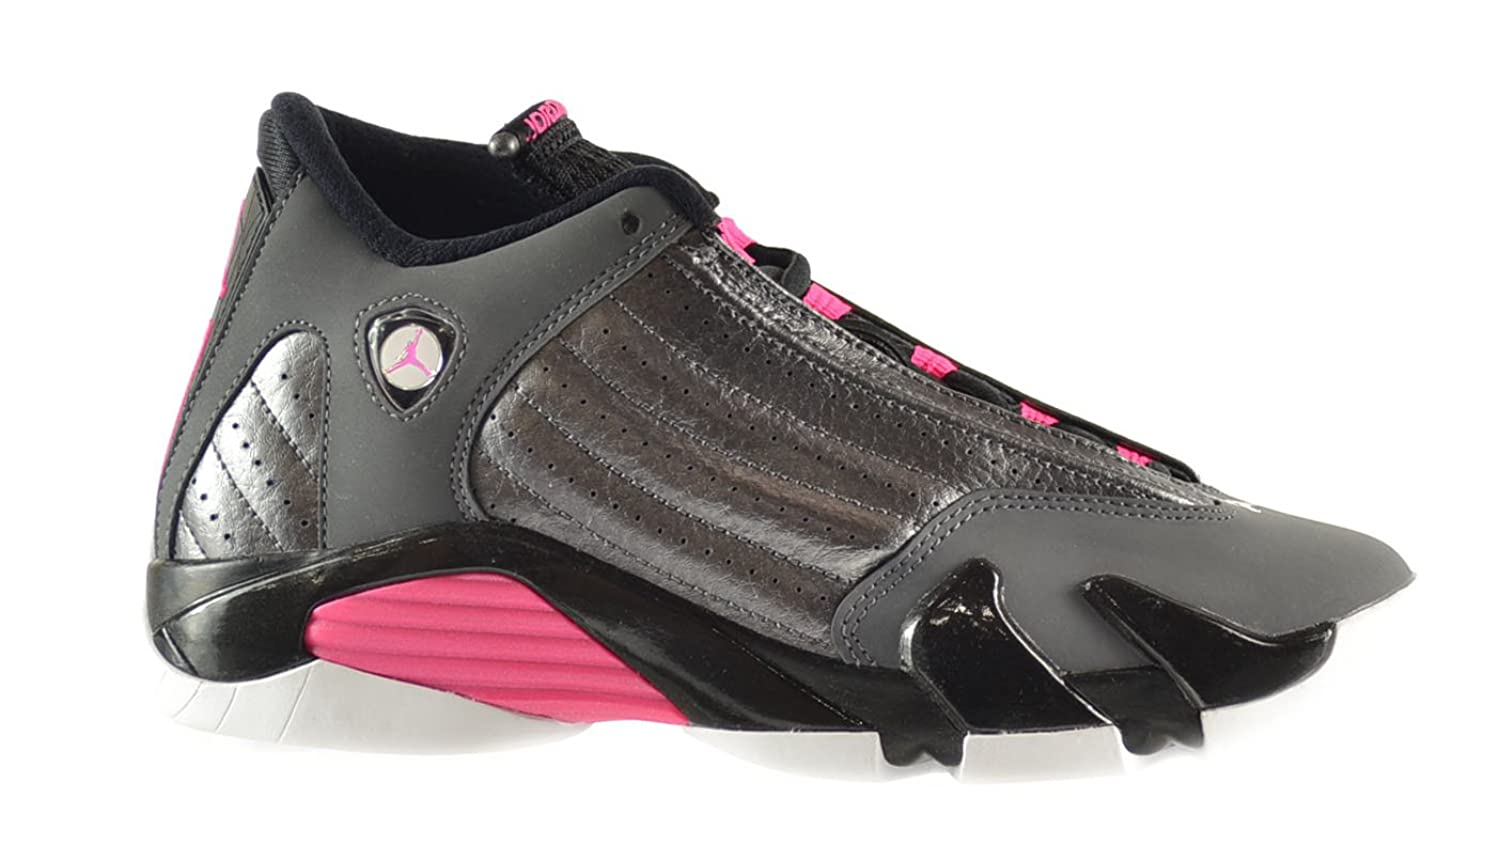 Amazon.com: Air Jordan 14 Retro GG Big Kids Shoes Metallic Dark Grey/Hyper  Pink-Black-White 654969-028: Shoes